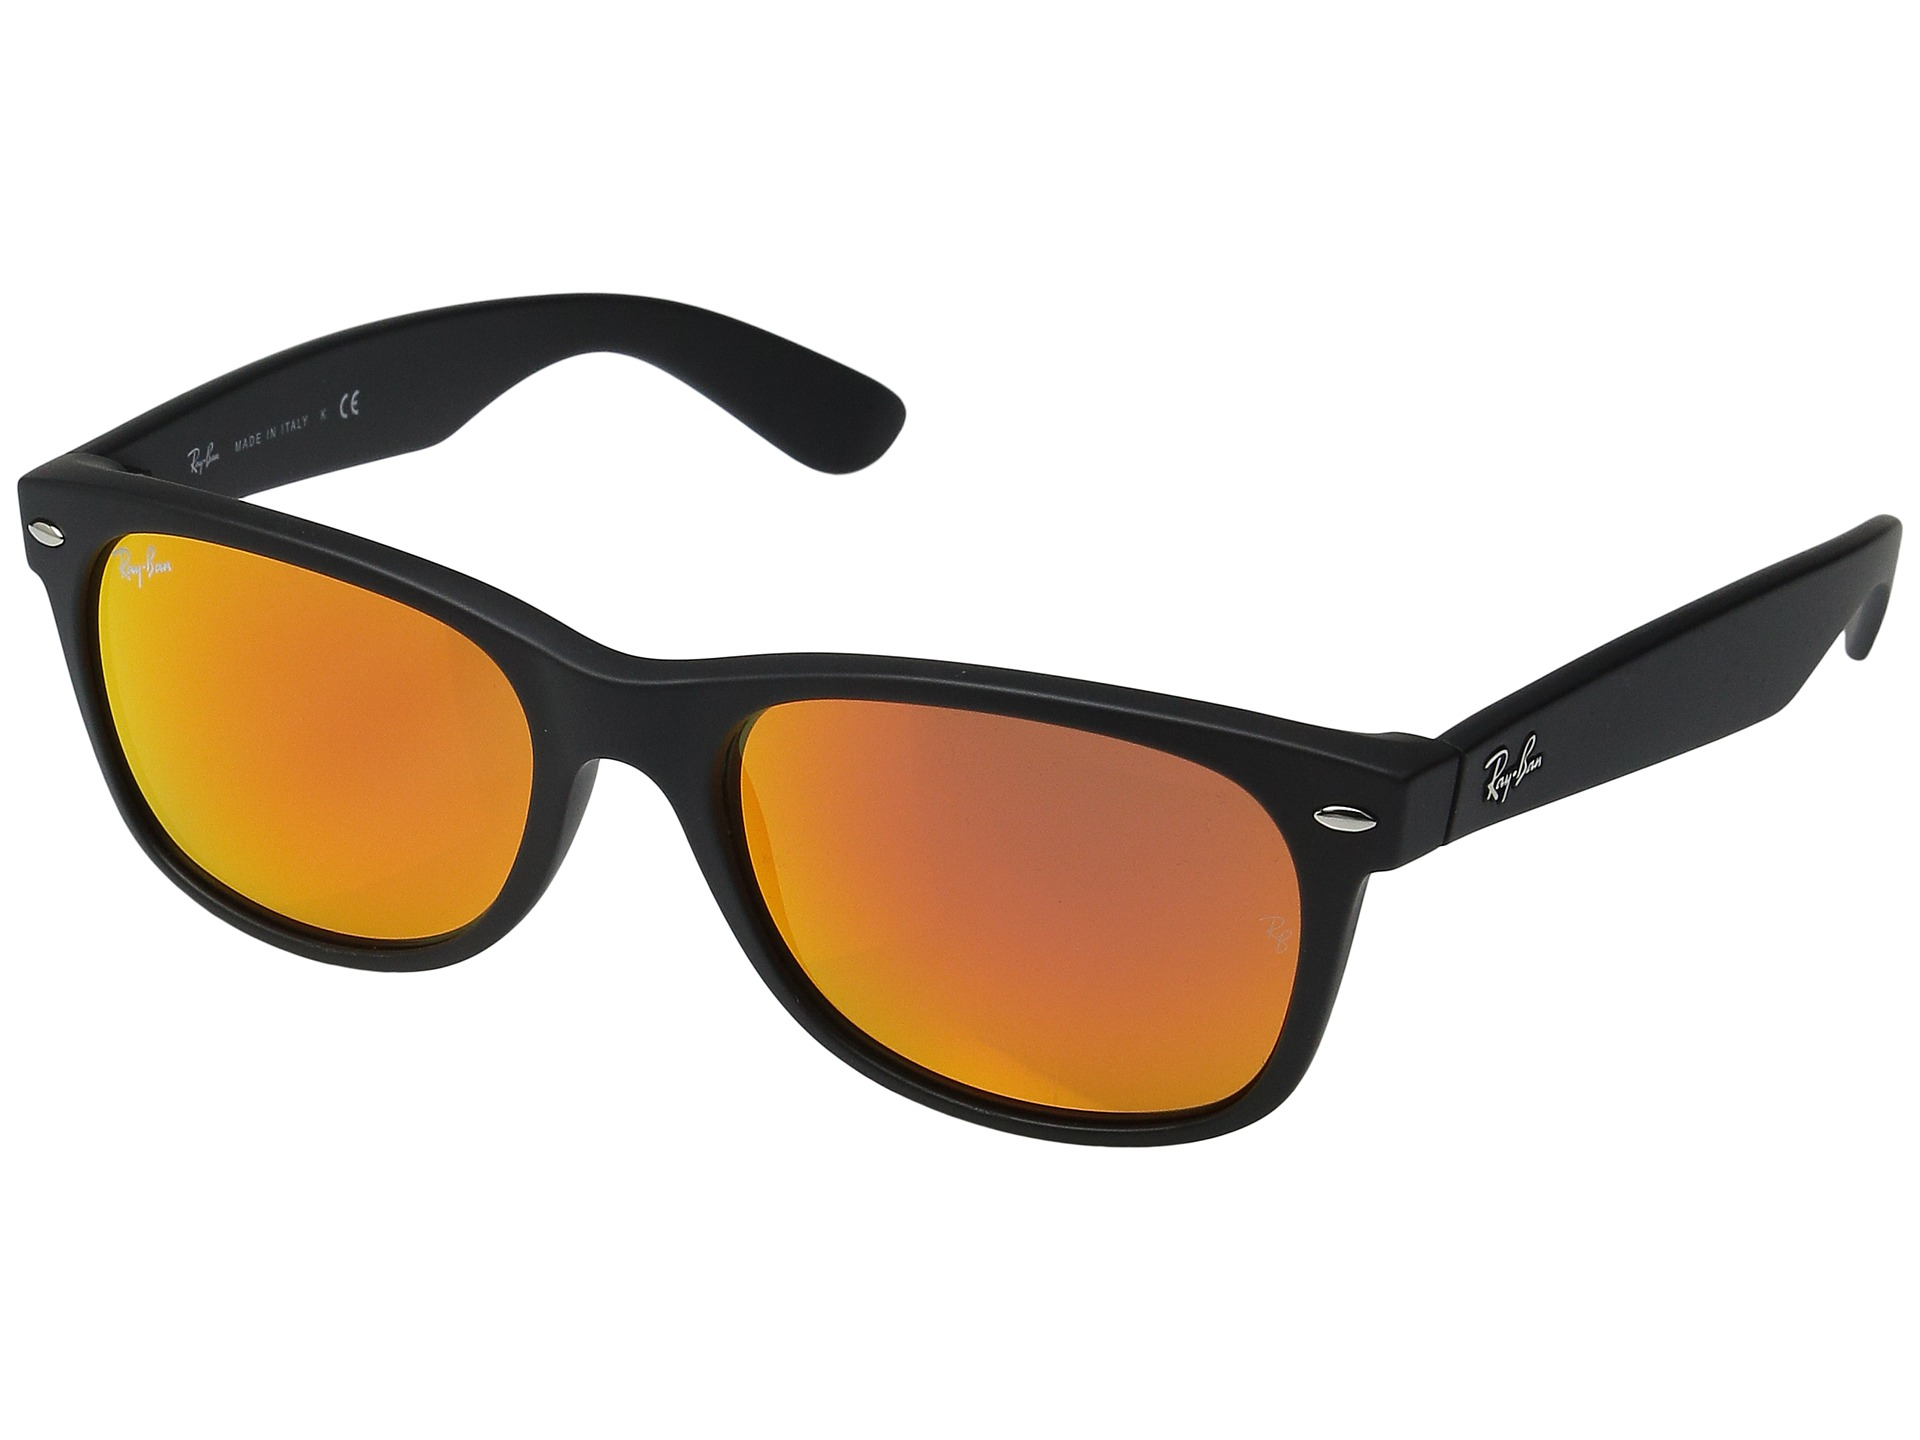 636567fba2 Ray Ban Plastic Red Lenses For Outdoor « Heritage Malta